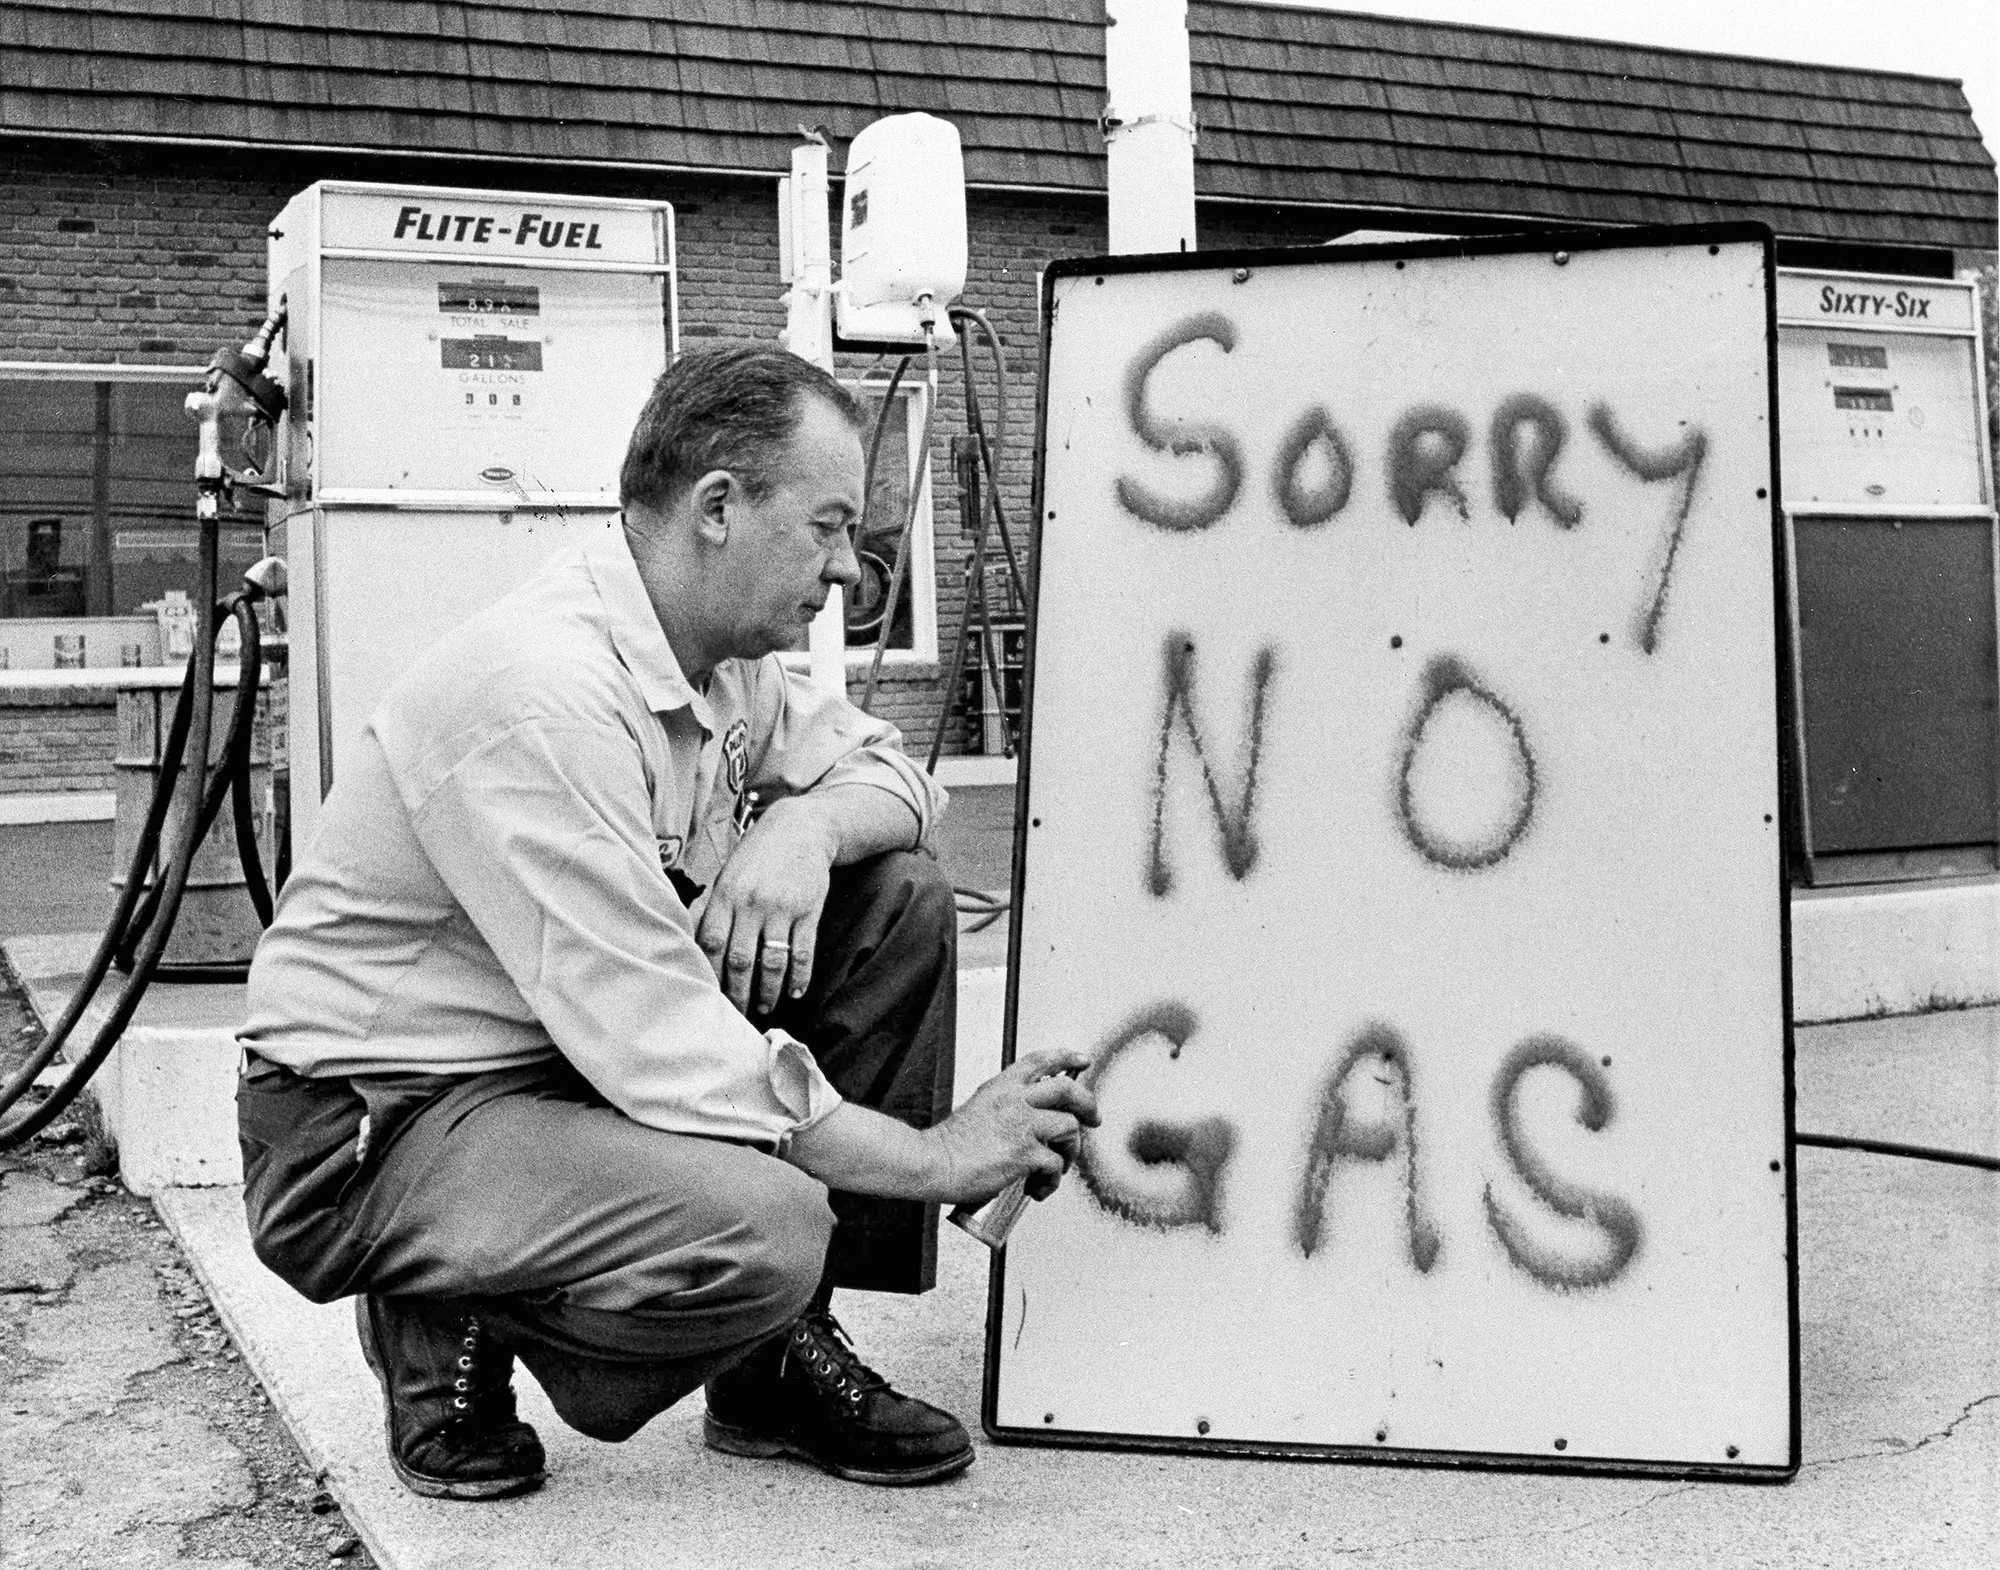 """Black-and-white photo of a man spray-painting """"Sorry No Gas"""" on a sign."""